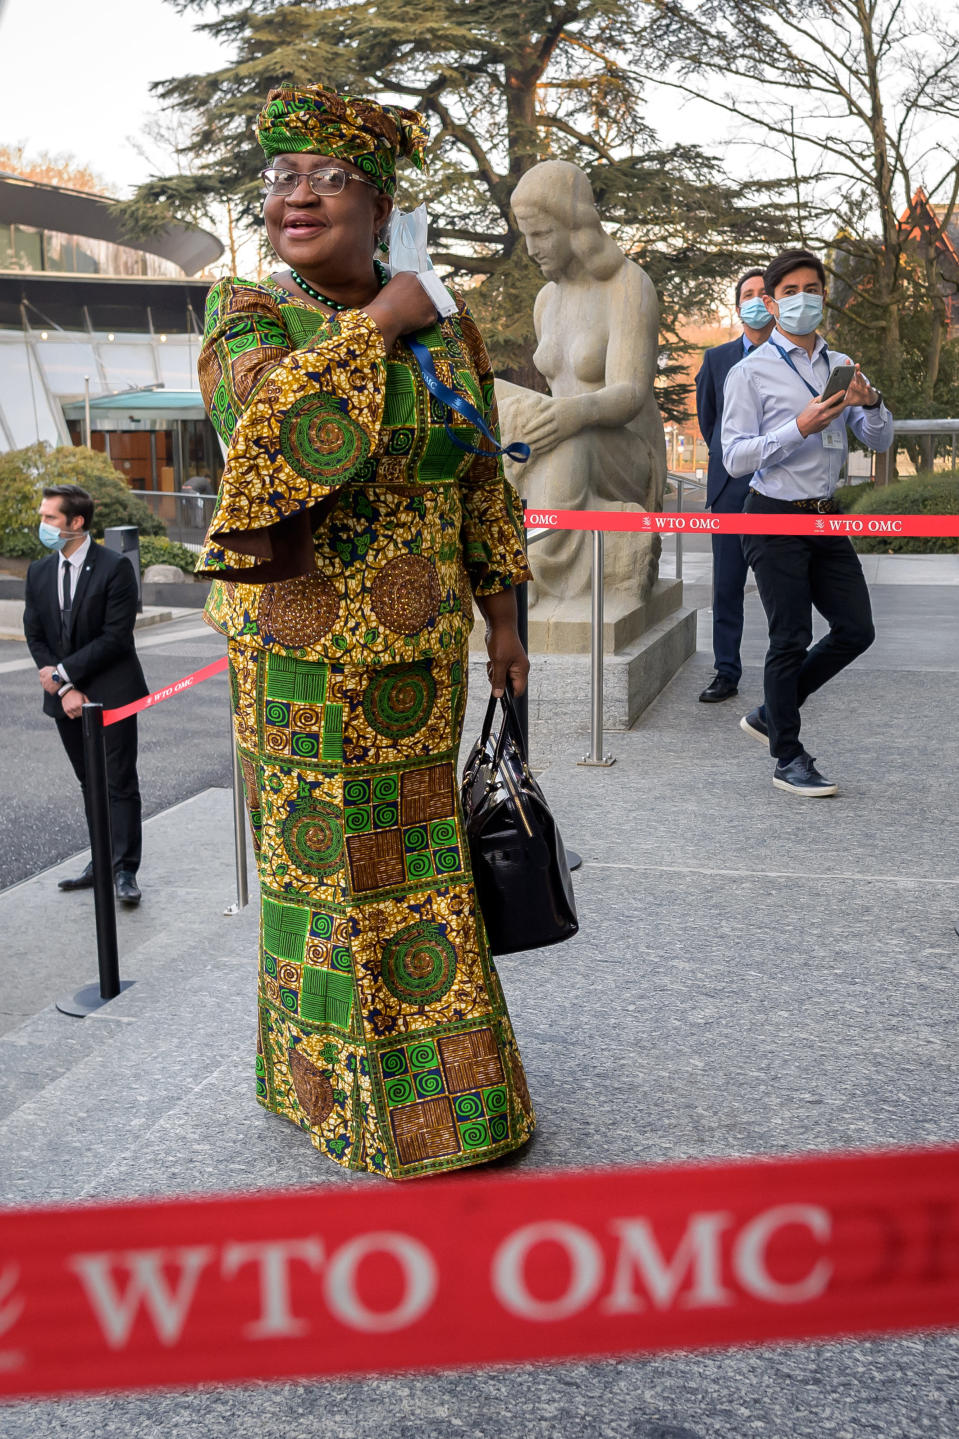 New Director-General of the World Trade Organisation (WTO) Ngozi Okonjo-Iweala arrives at the WTO headquarters to takes office in Geneva, Switzerland, Monday, March 1, 2021. Nigeria's Ngozi Okonjo-Iweala takes the reins of the WTO amid hope she will infuse the beleaguered body with fresh momentum to address towering challenges and a pandemic-fuelled global economic crisis. (Fabrice Coffrini/Pool/Keystone via AP)